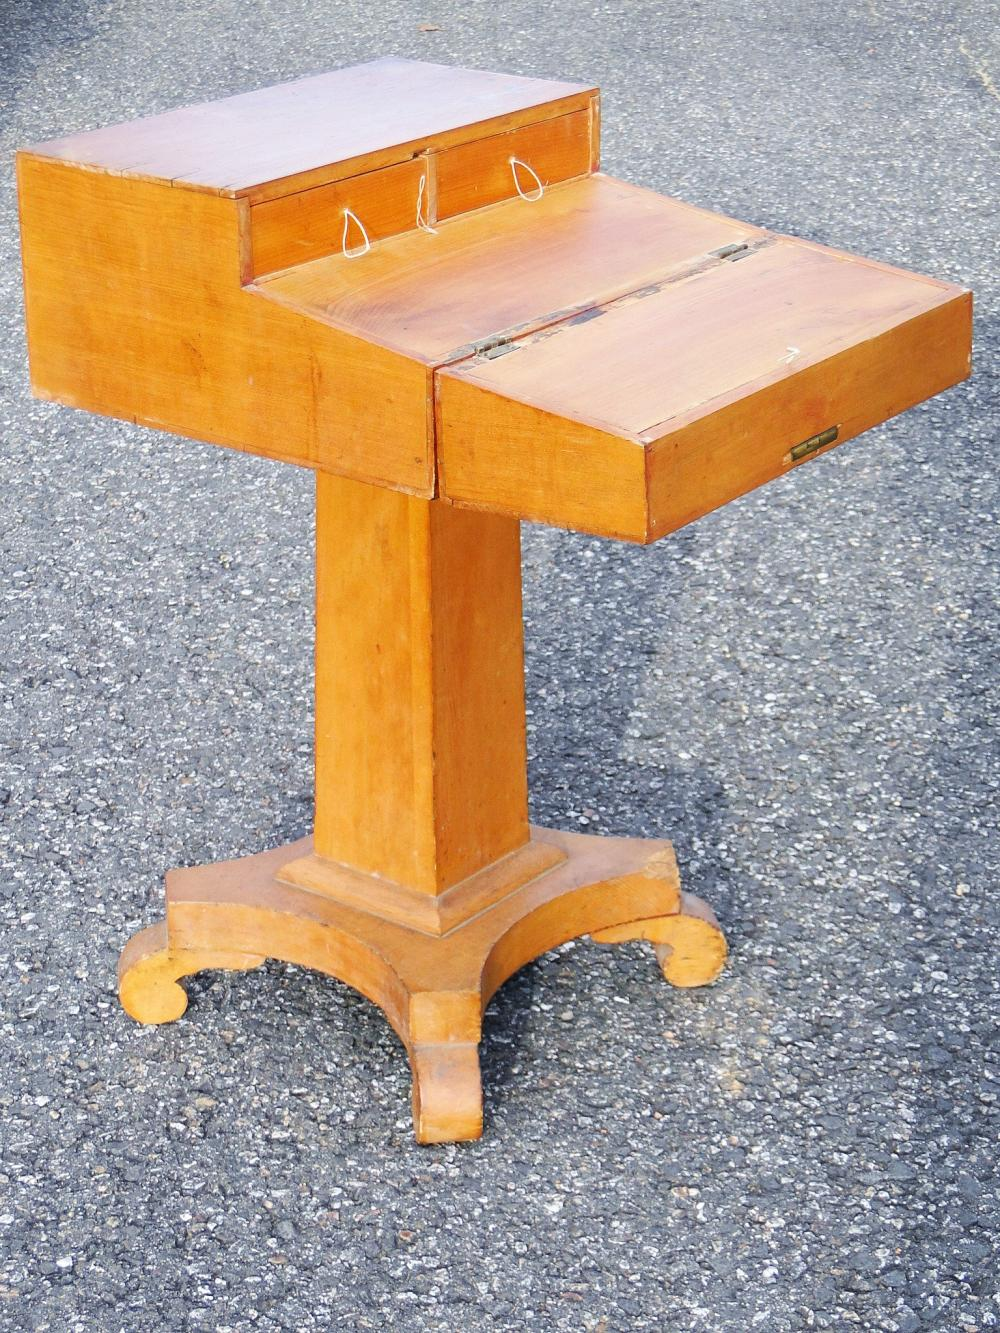 C 1820 FOLD OPEN WORKSTAND